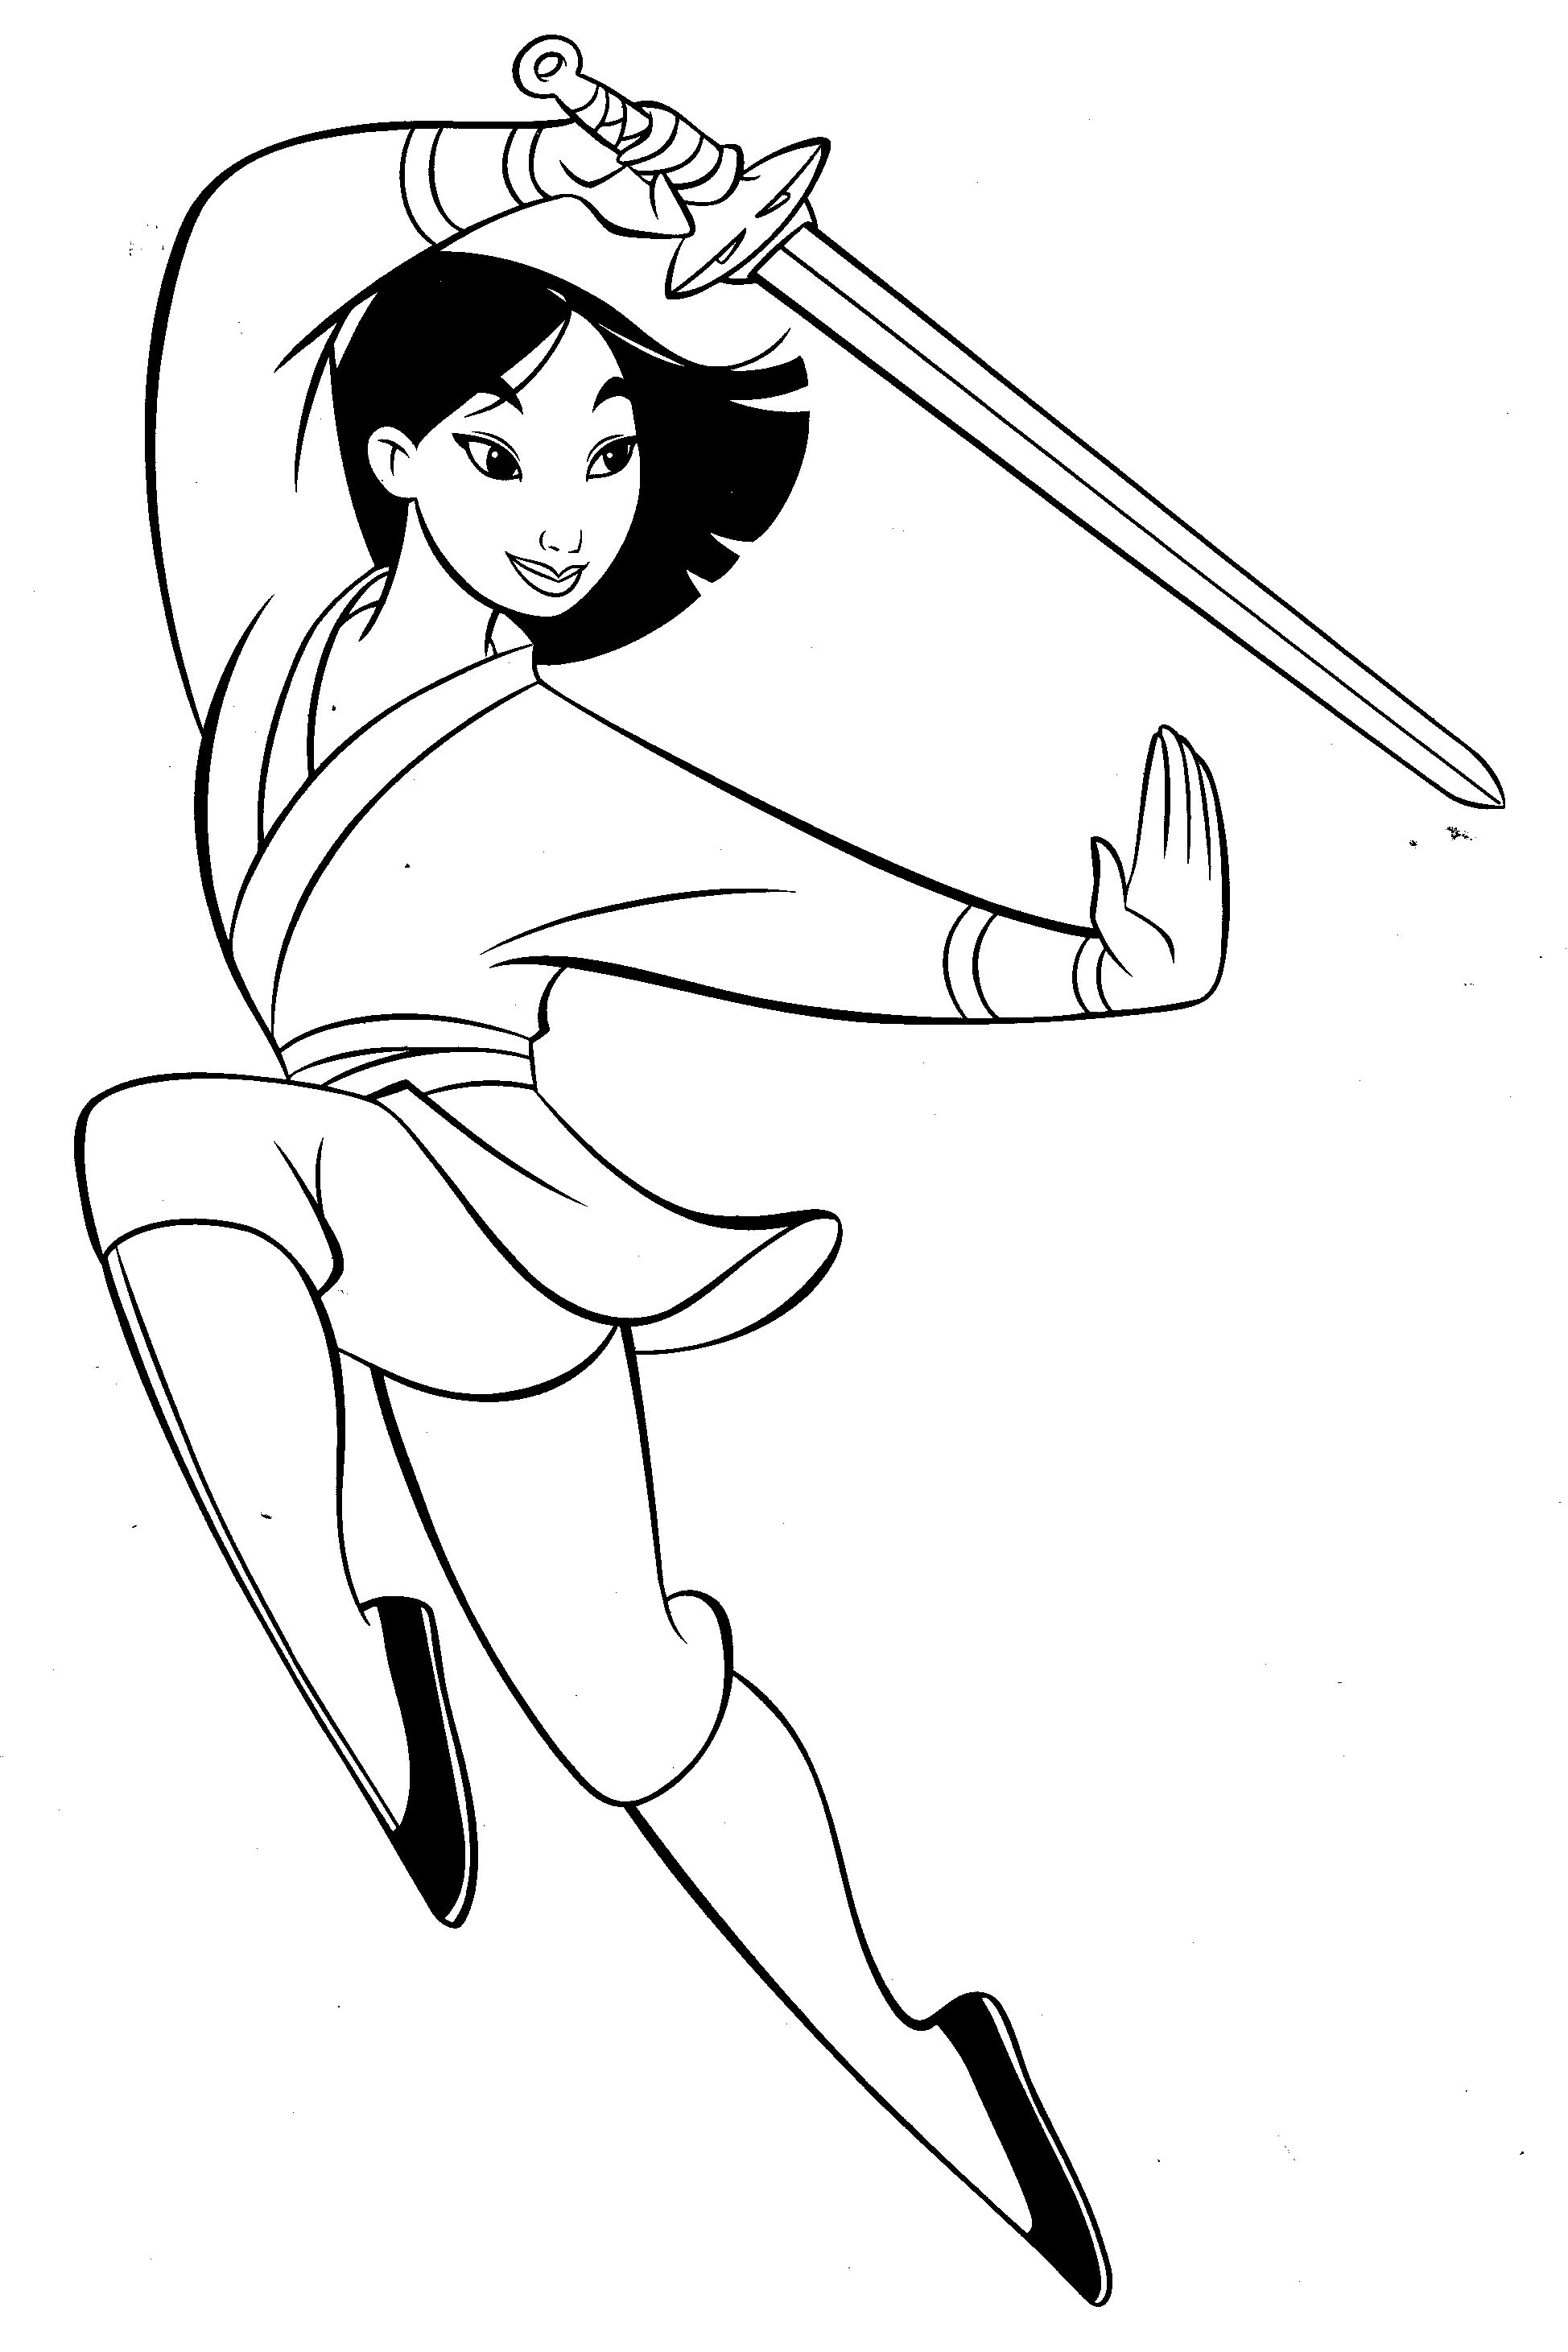 Coloring Pages On Pinterest Mulan Fighter Coloring Pages Pinterest At Curiertech